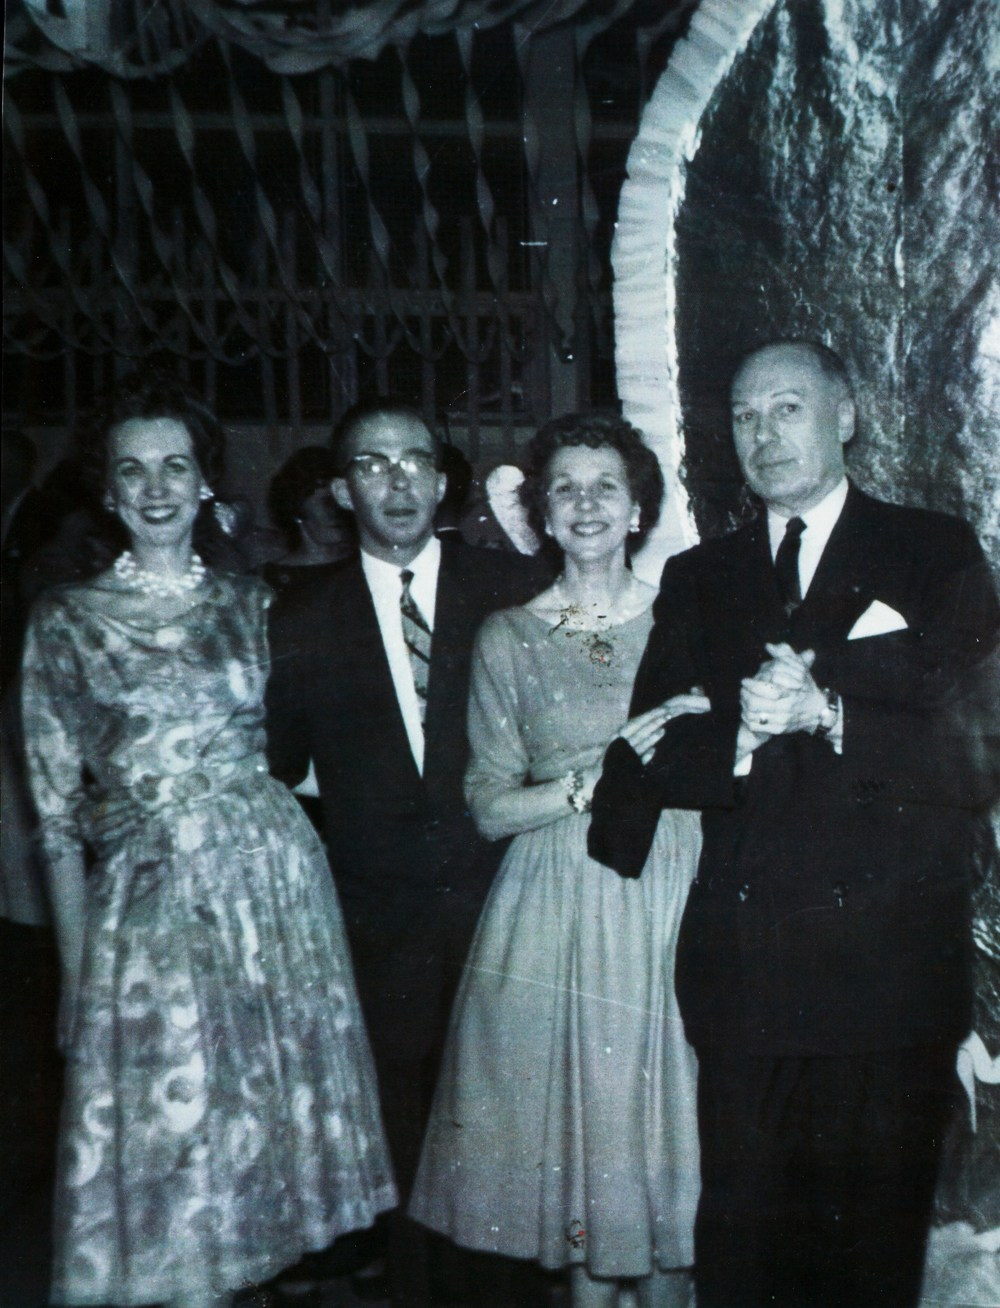 1962 Chaparones at  high school formal,  Lois Shatford, Dr.  Bob Shatford,  Helen Jones,  Sally Jones